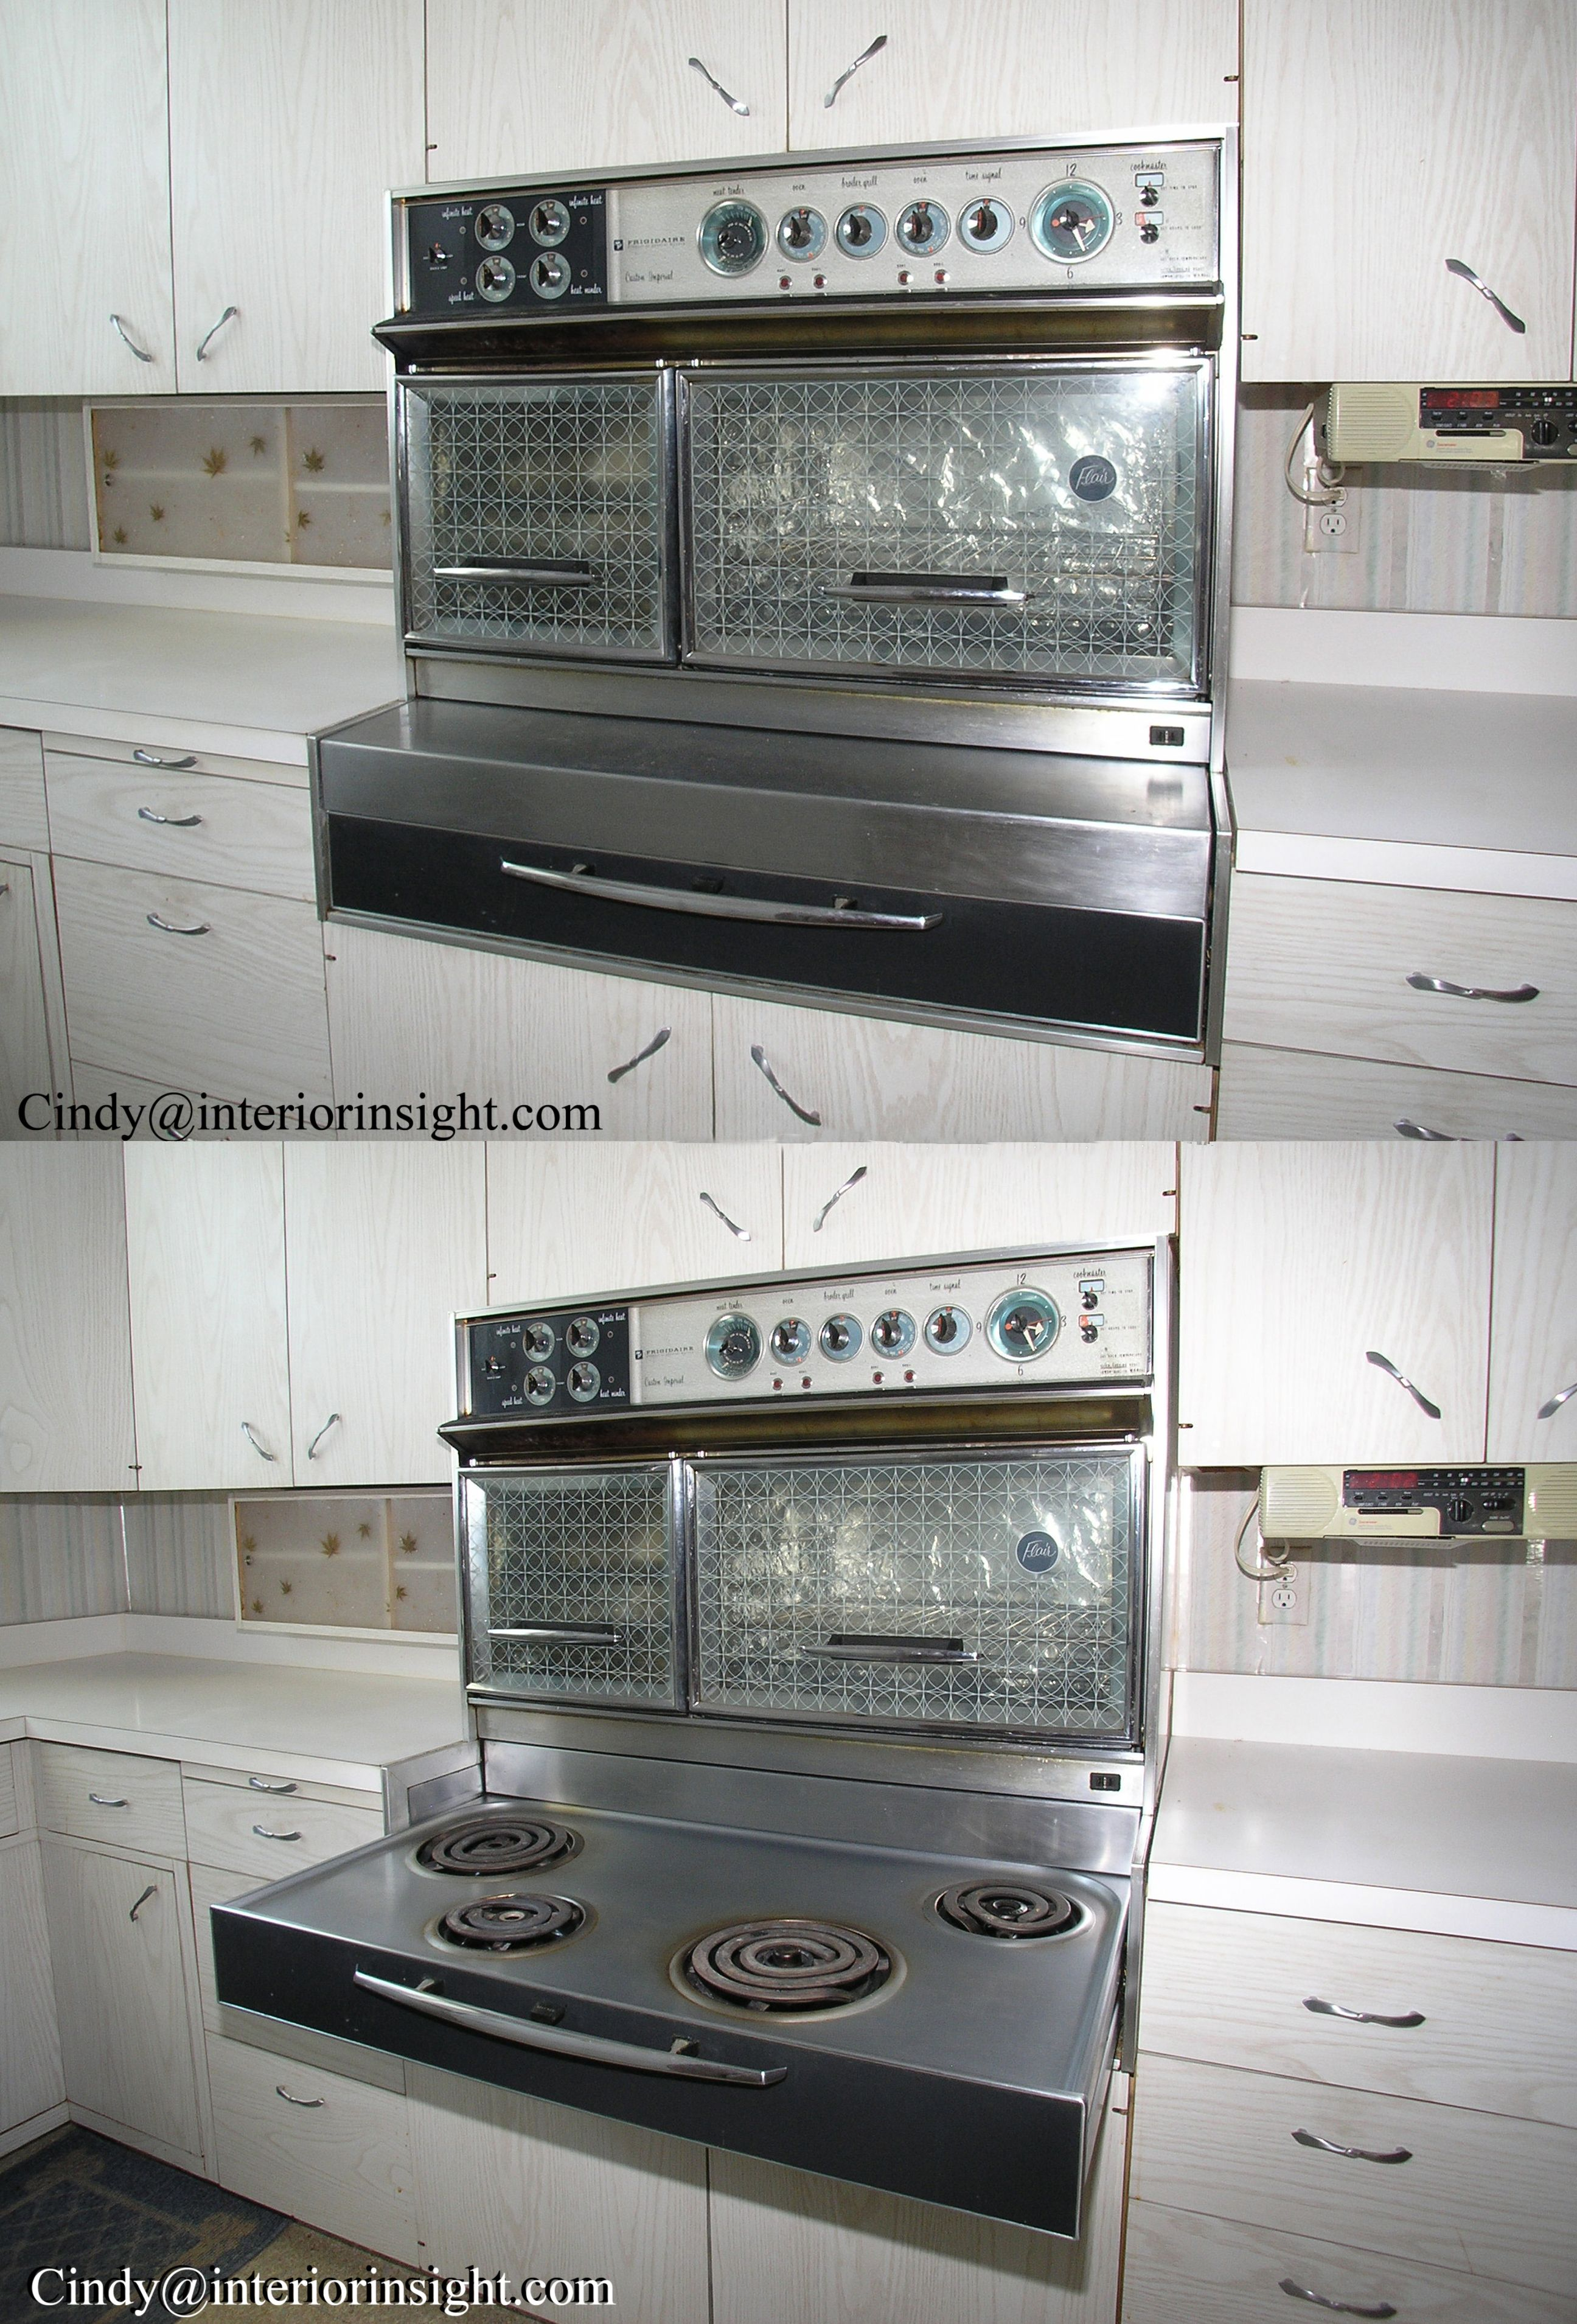 Old Tappan 400 Stove Oven Wiring Diagram | Wiring Liry on